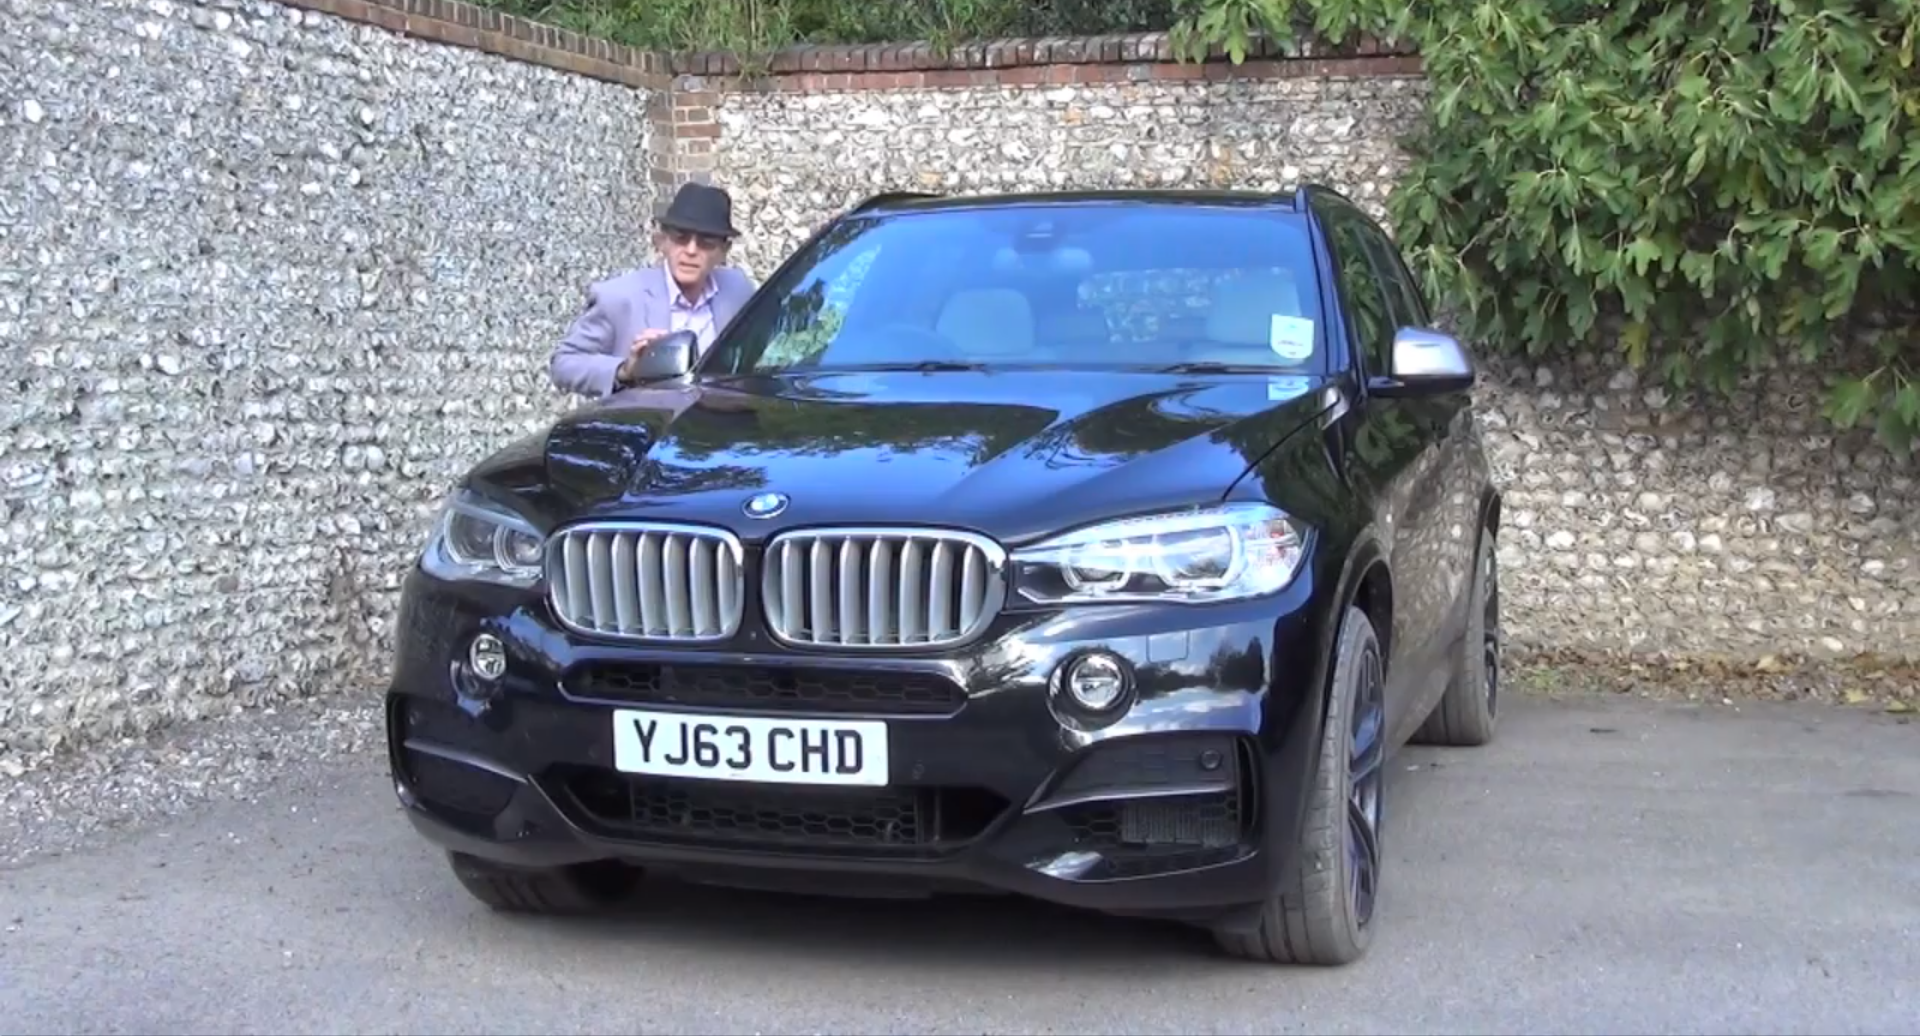 2014 Bmw F15 X5 Off Road Review By Honest John Autoevolution